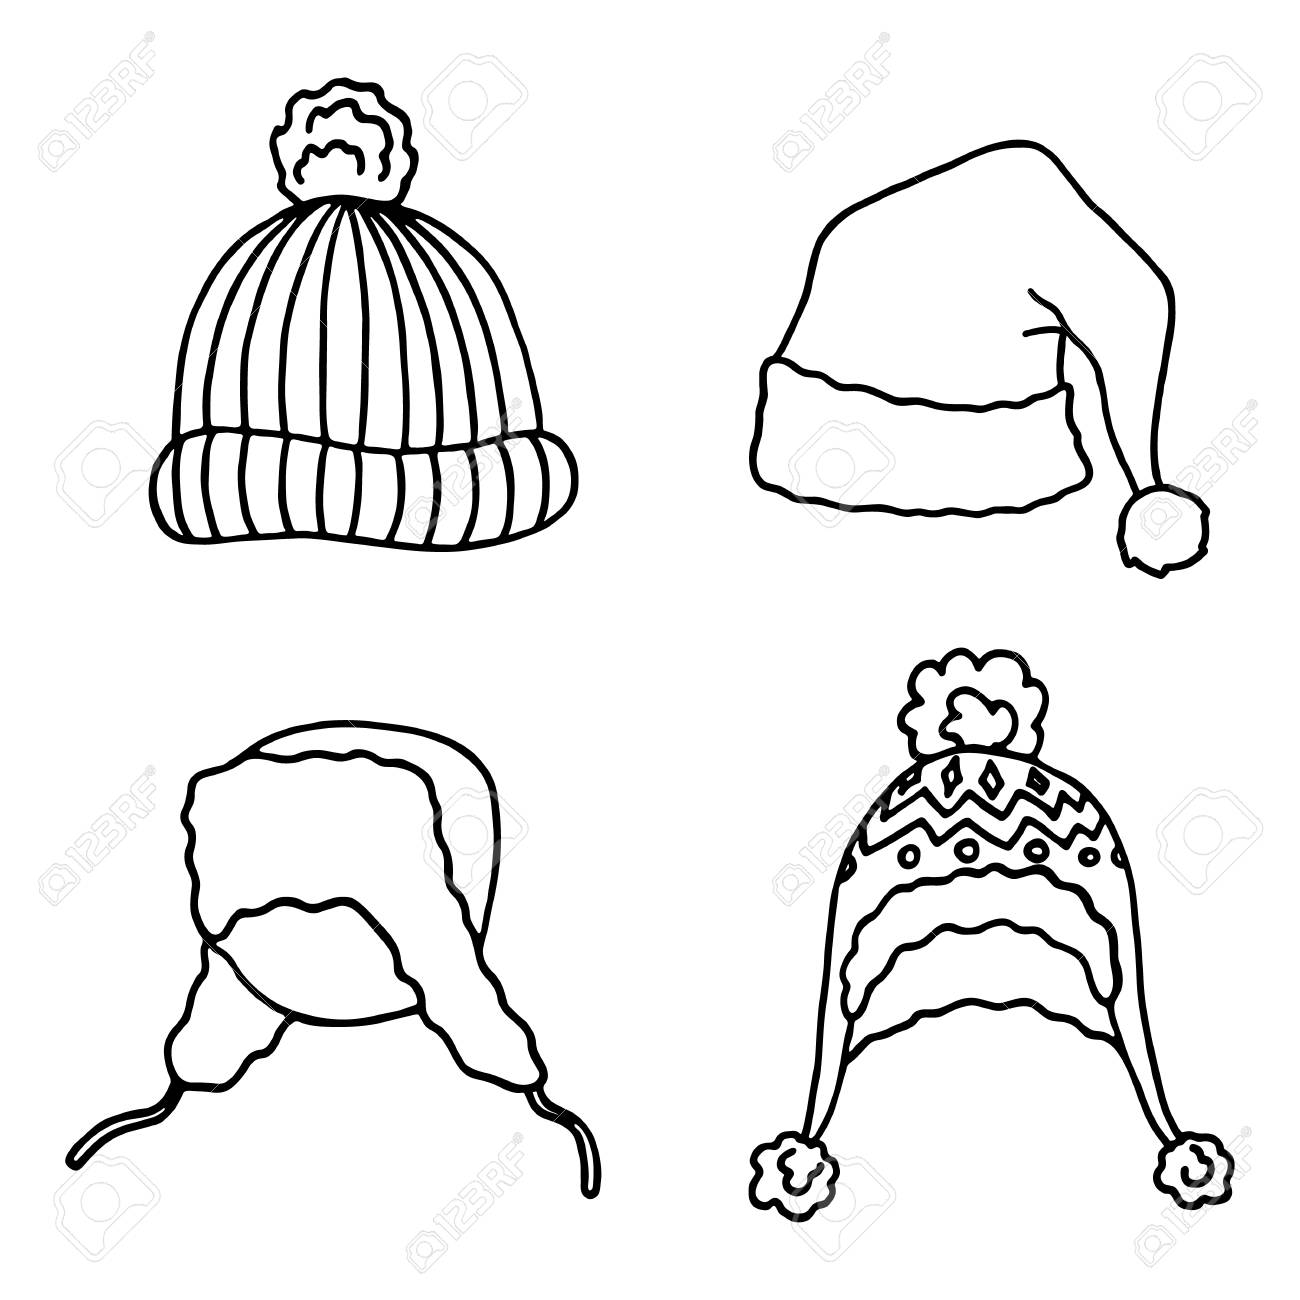 It is a picture of Playful Winter Hat Drawing